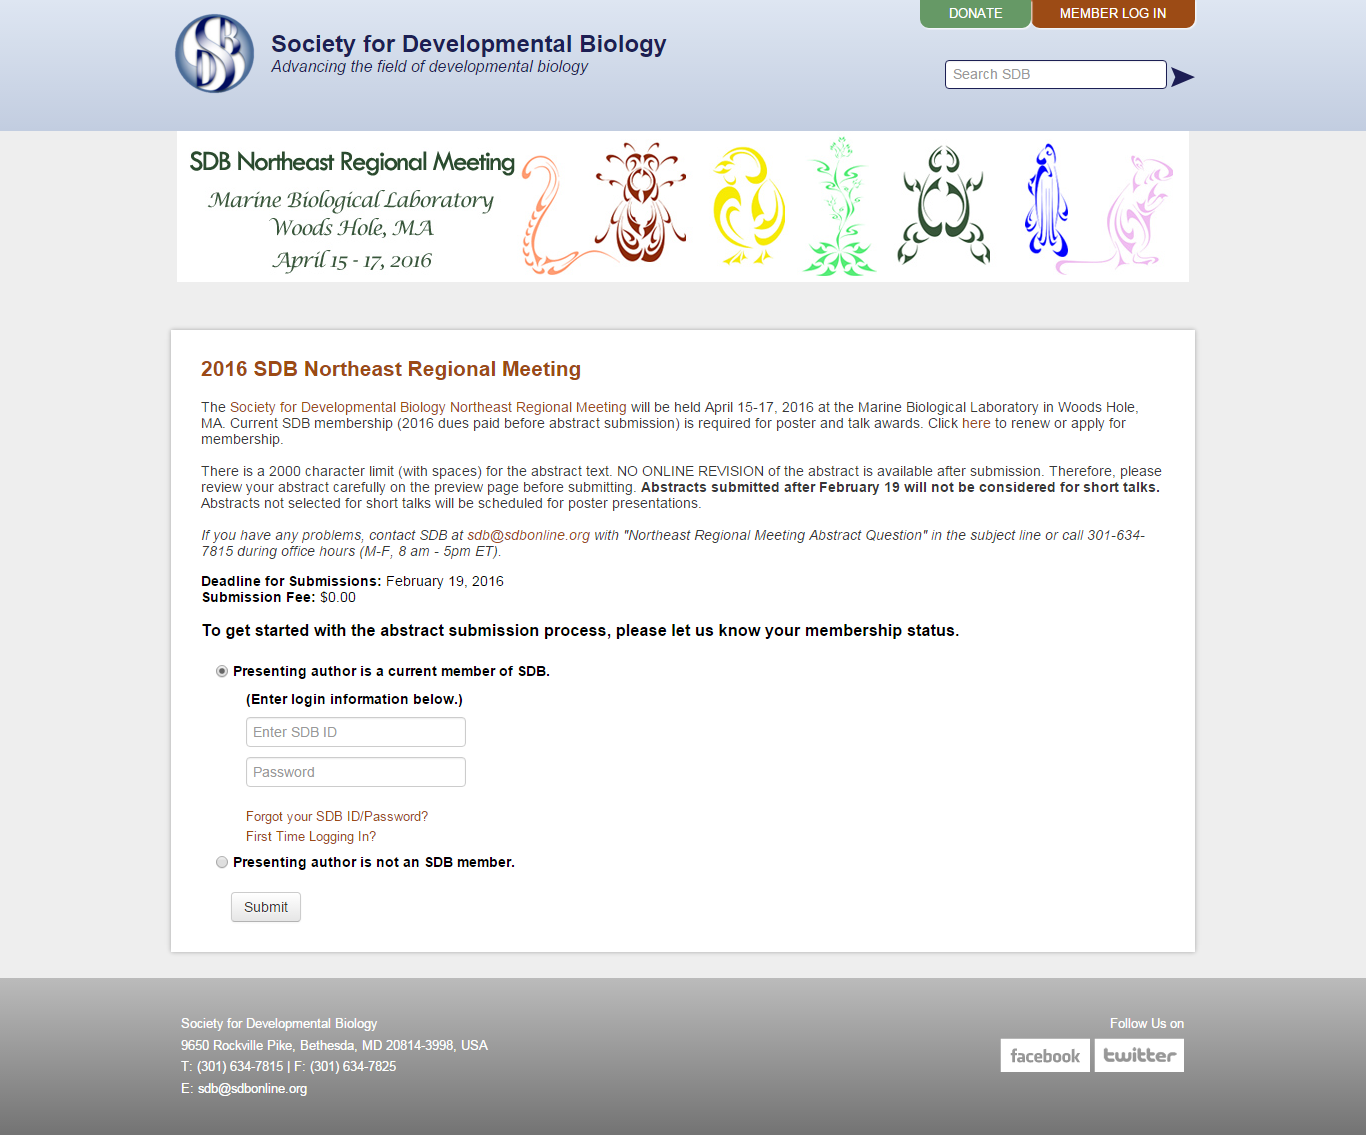 SDB website manages scientific abstract submissions